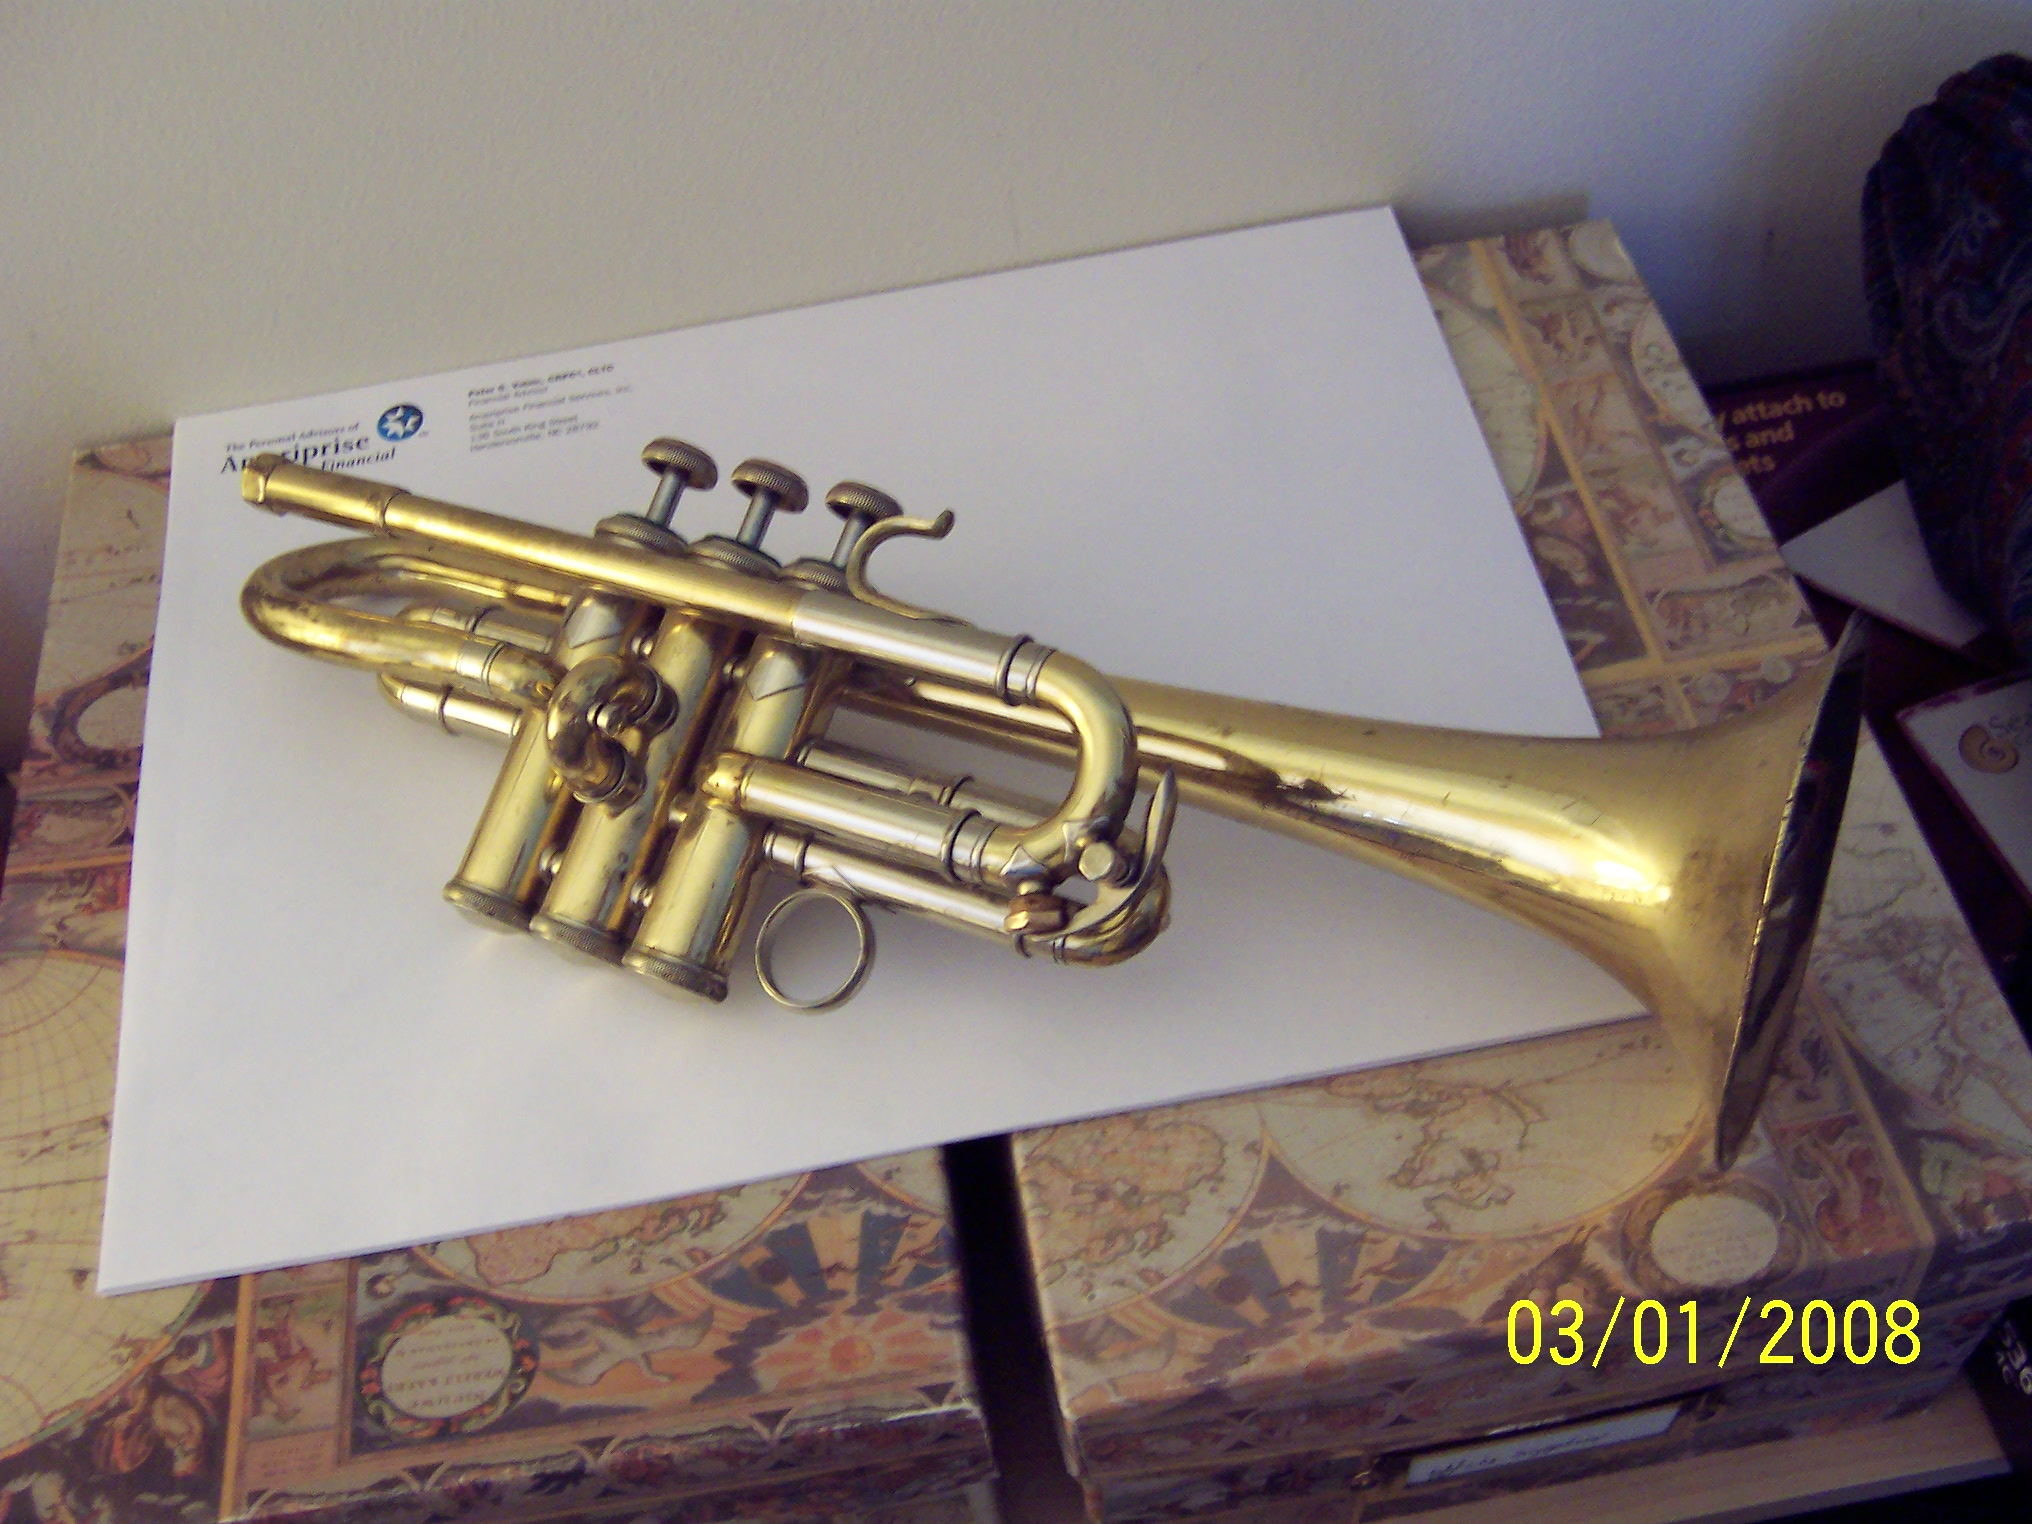 images_VEimages_Music_GeorgesMagerFTrumpet